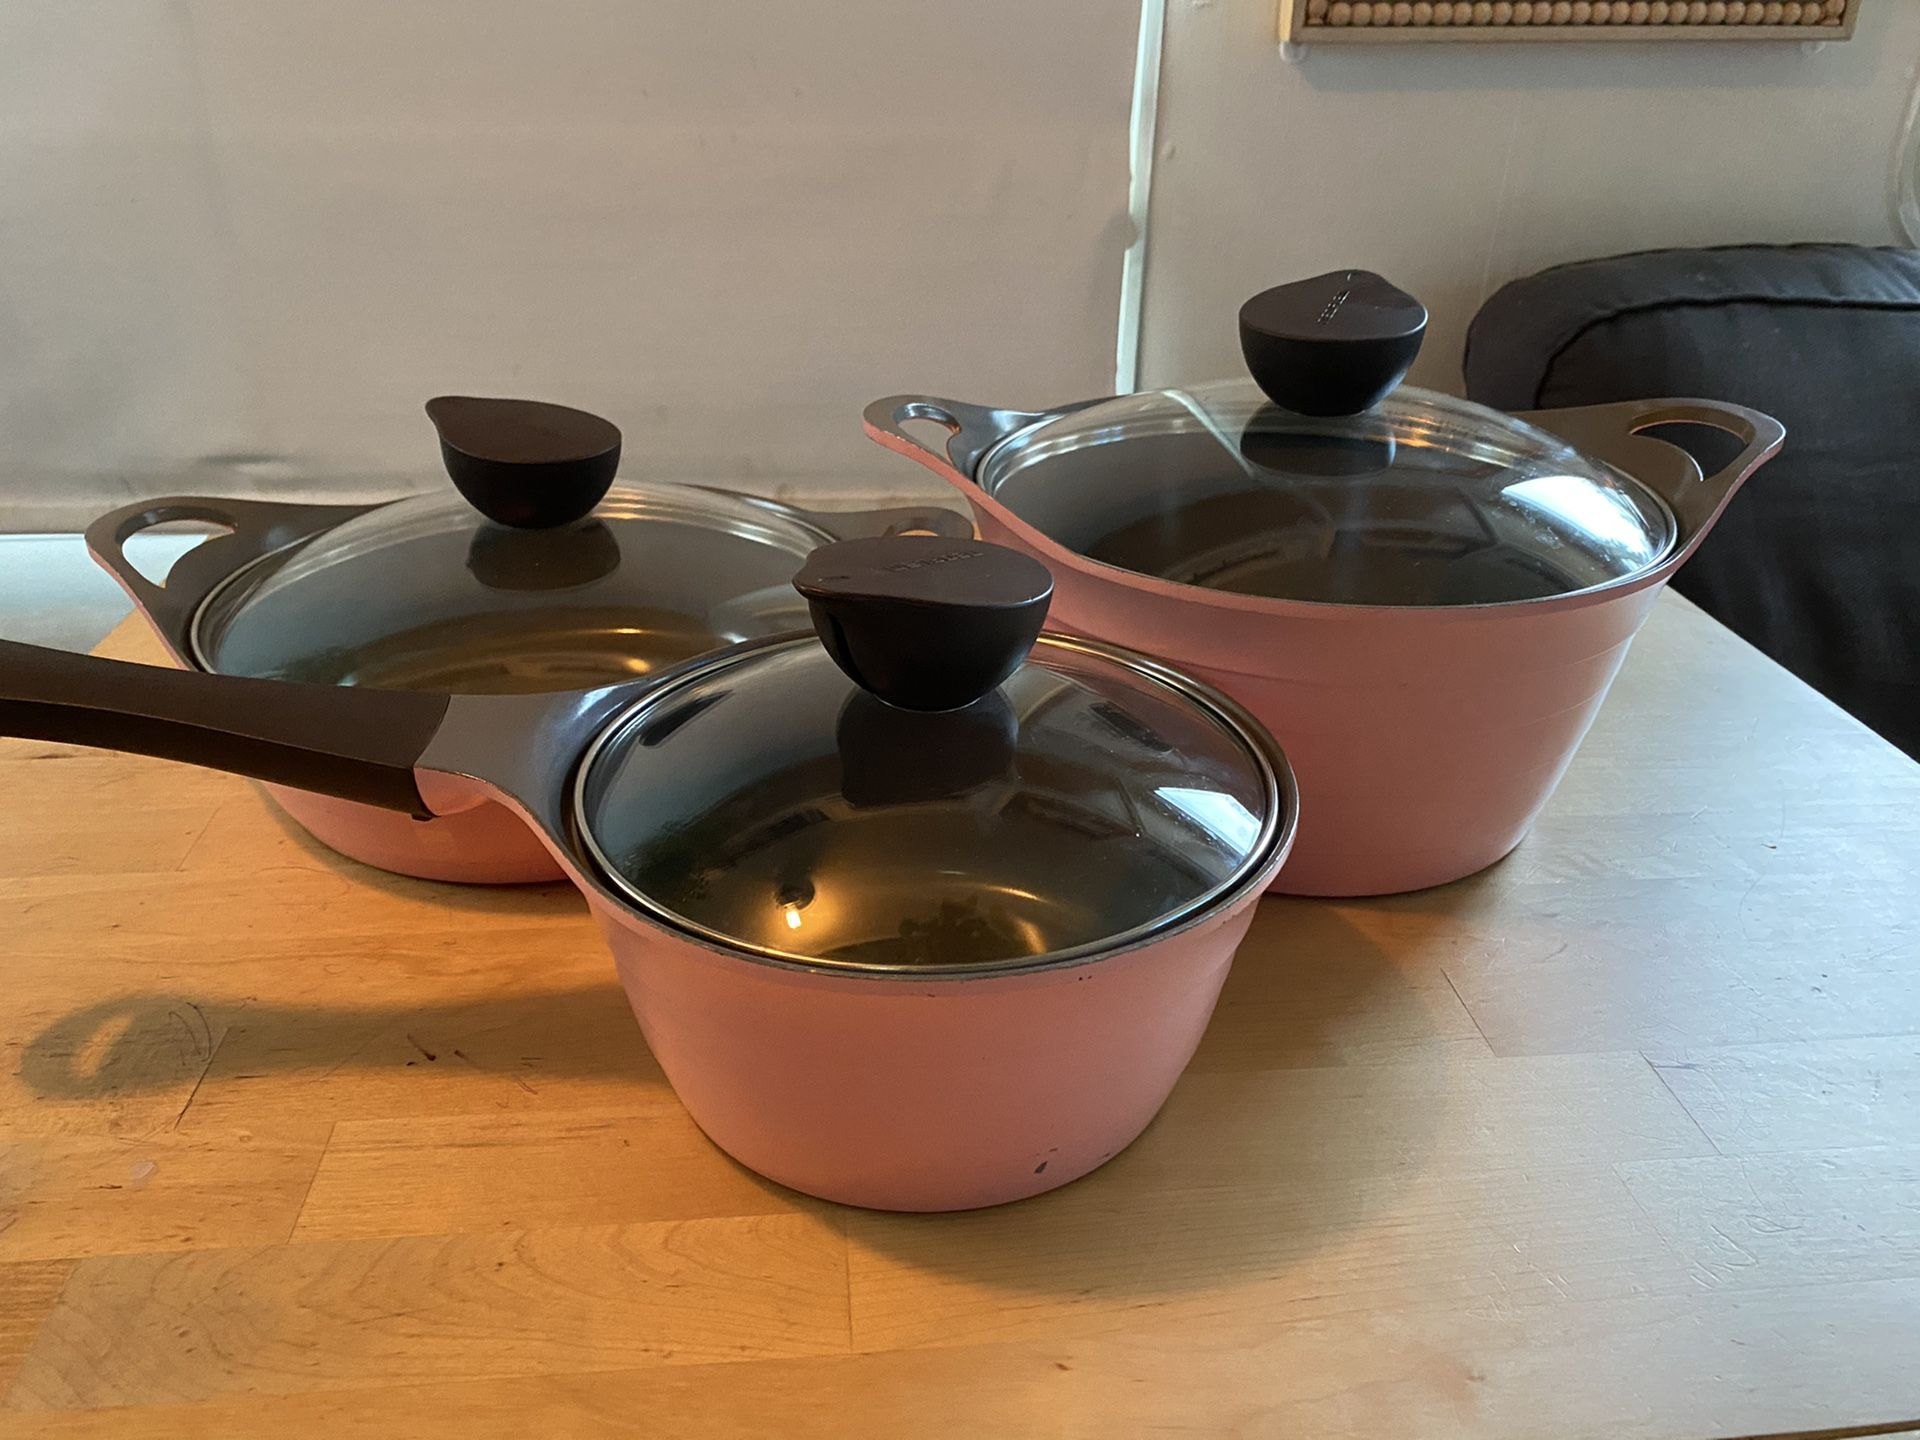 Neoflam cookware set